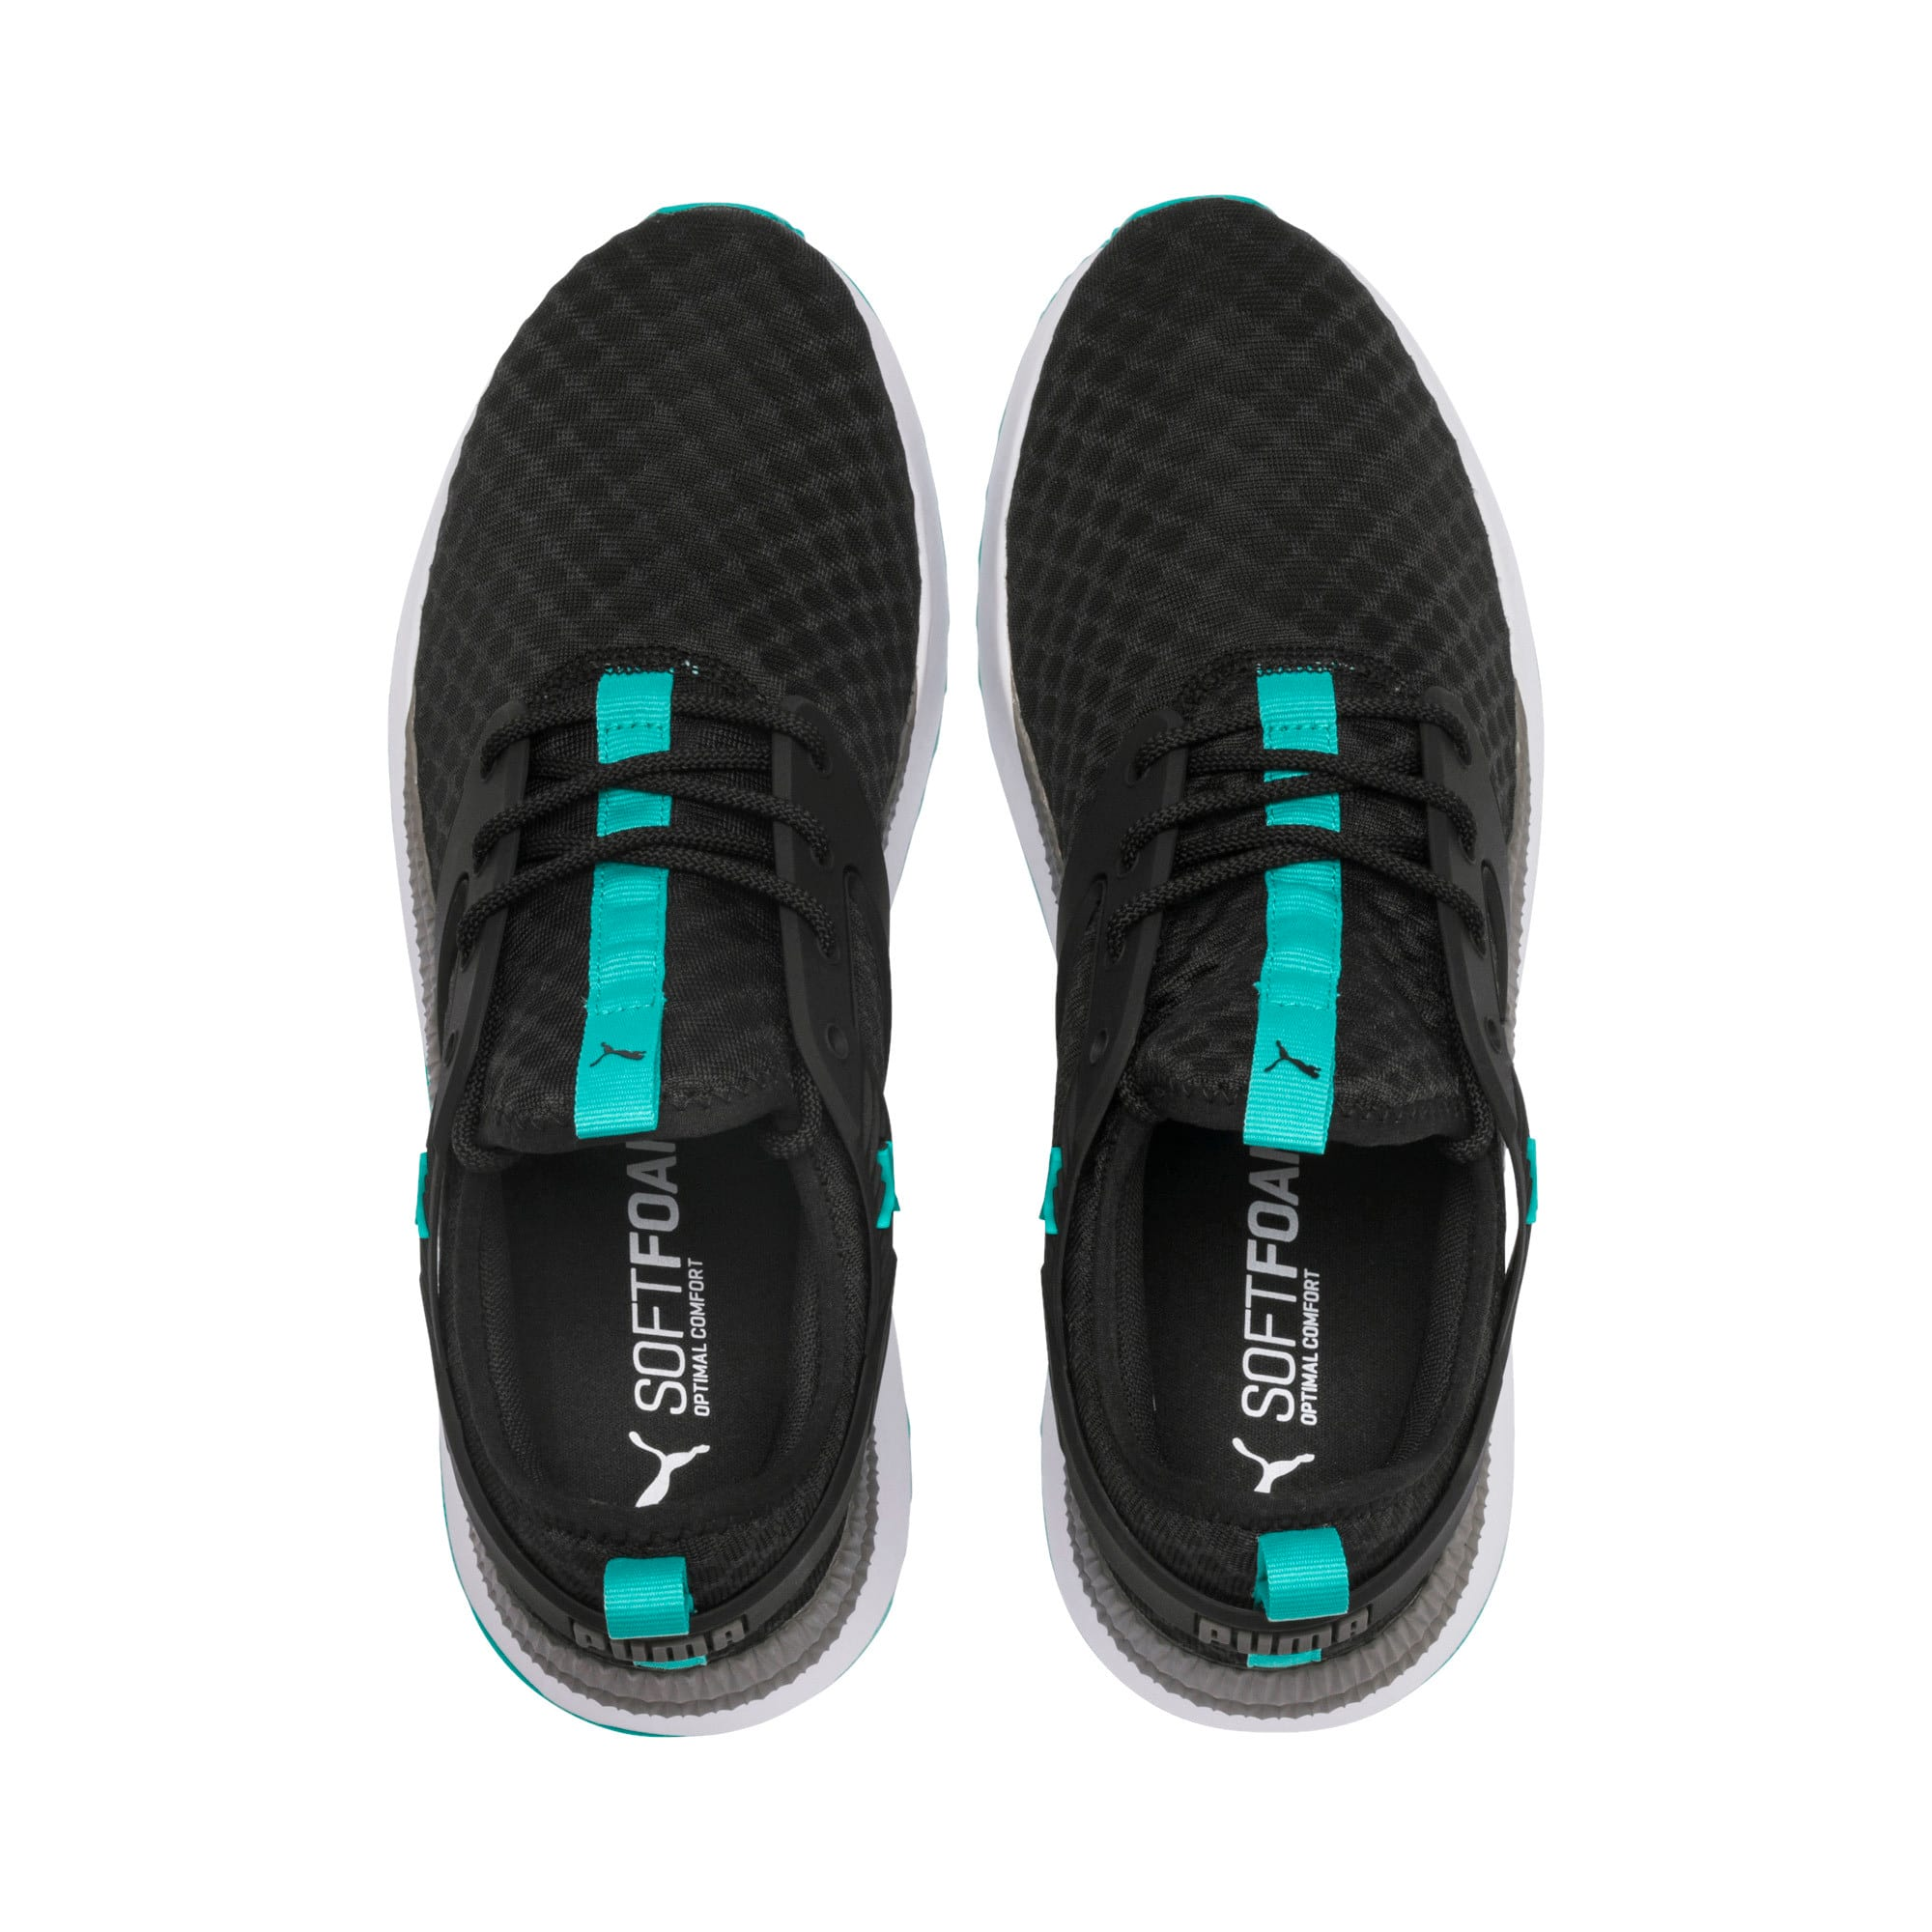 Thumbnail 7 of Pacer Next Excel Core Sneakers, Puma Black-Blue Turquoise, medium